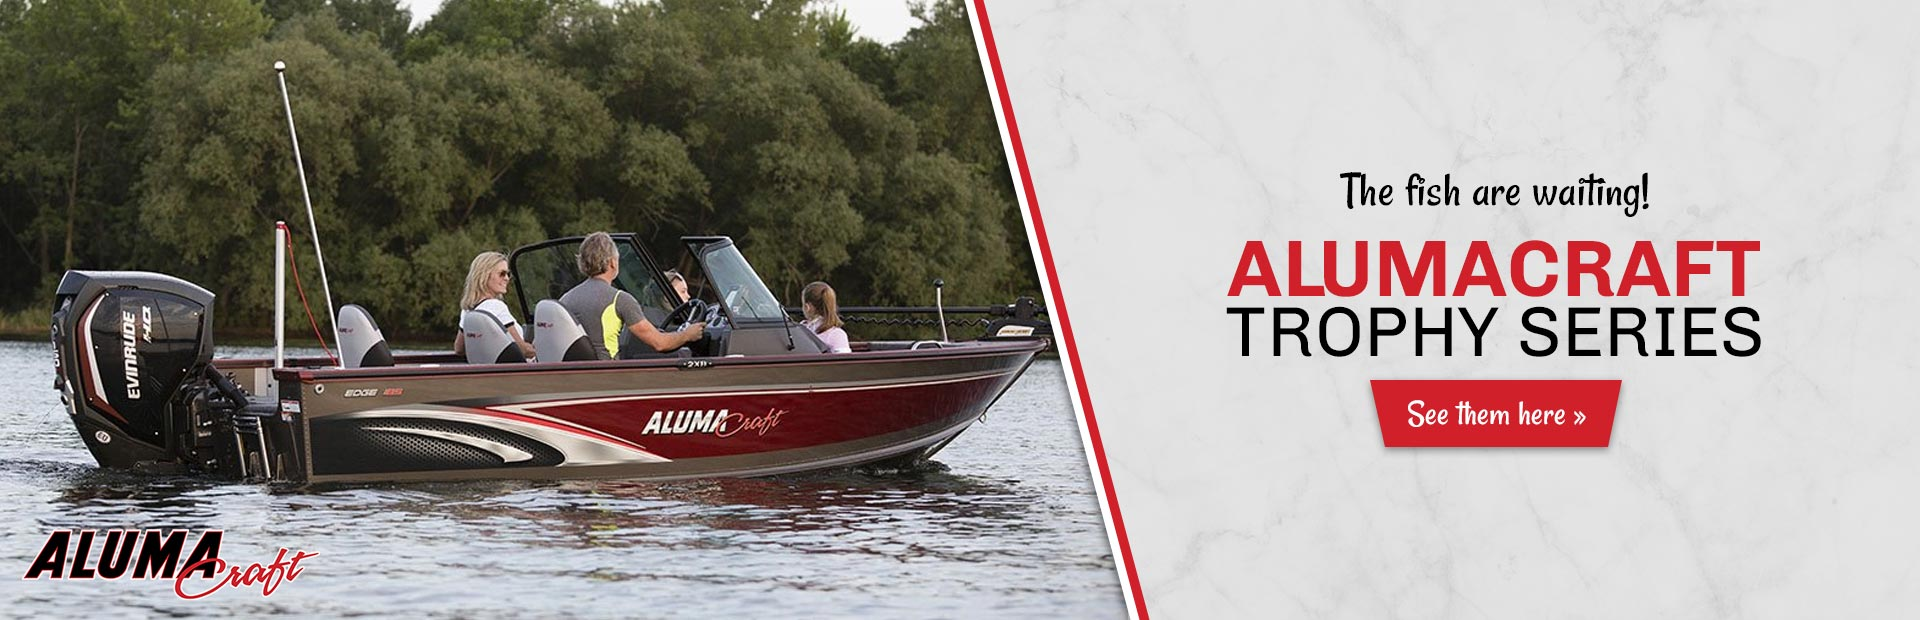 Alumacraft Trophy Series: Click here to view the models.